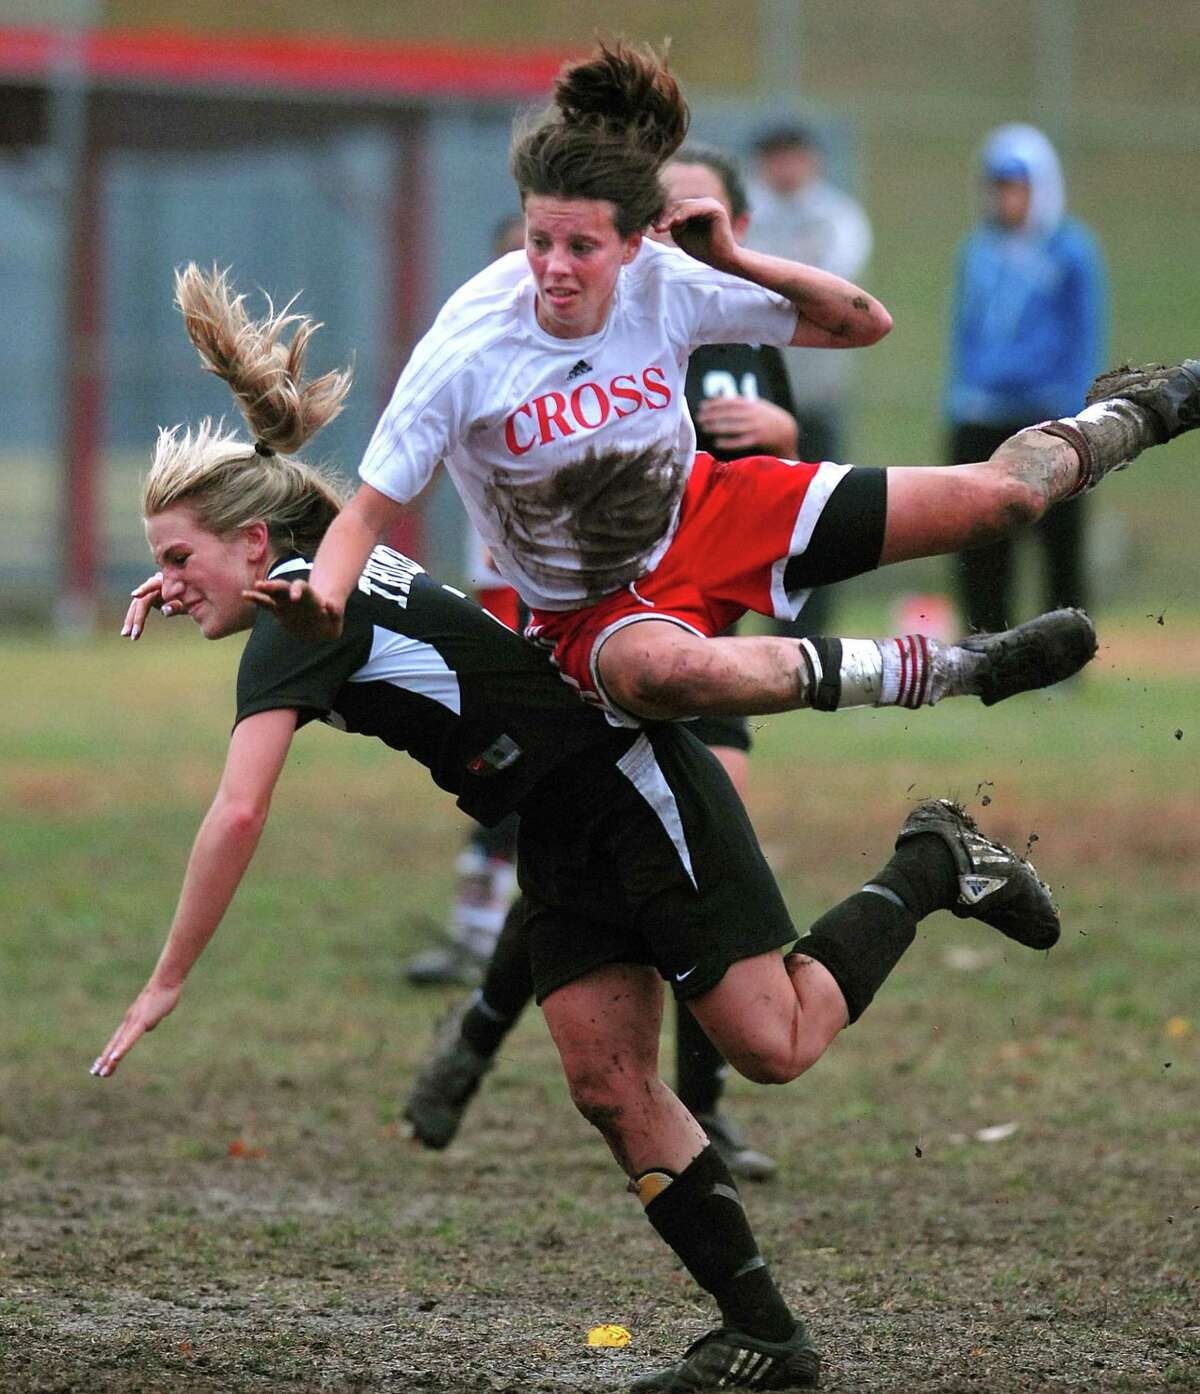 In this file photo Natalie Beach, then a player for Wilbur Cross High School, top, gets upended by Trumbull's Jess Deigel as Beach got a header during the first half.